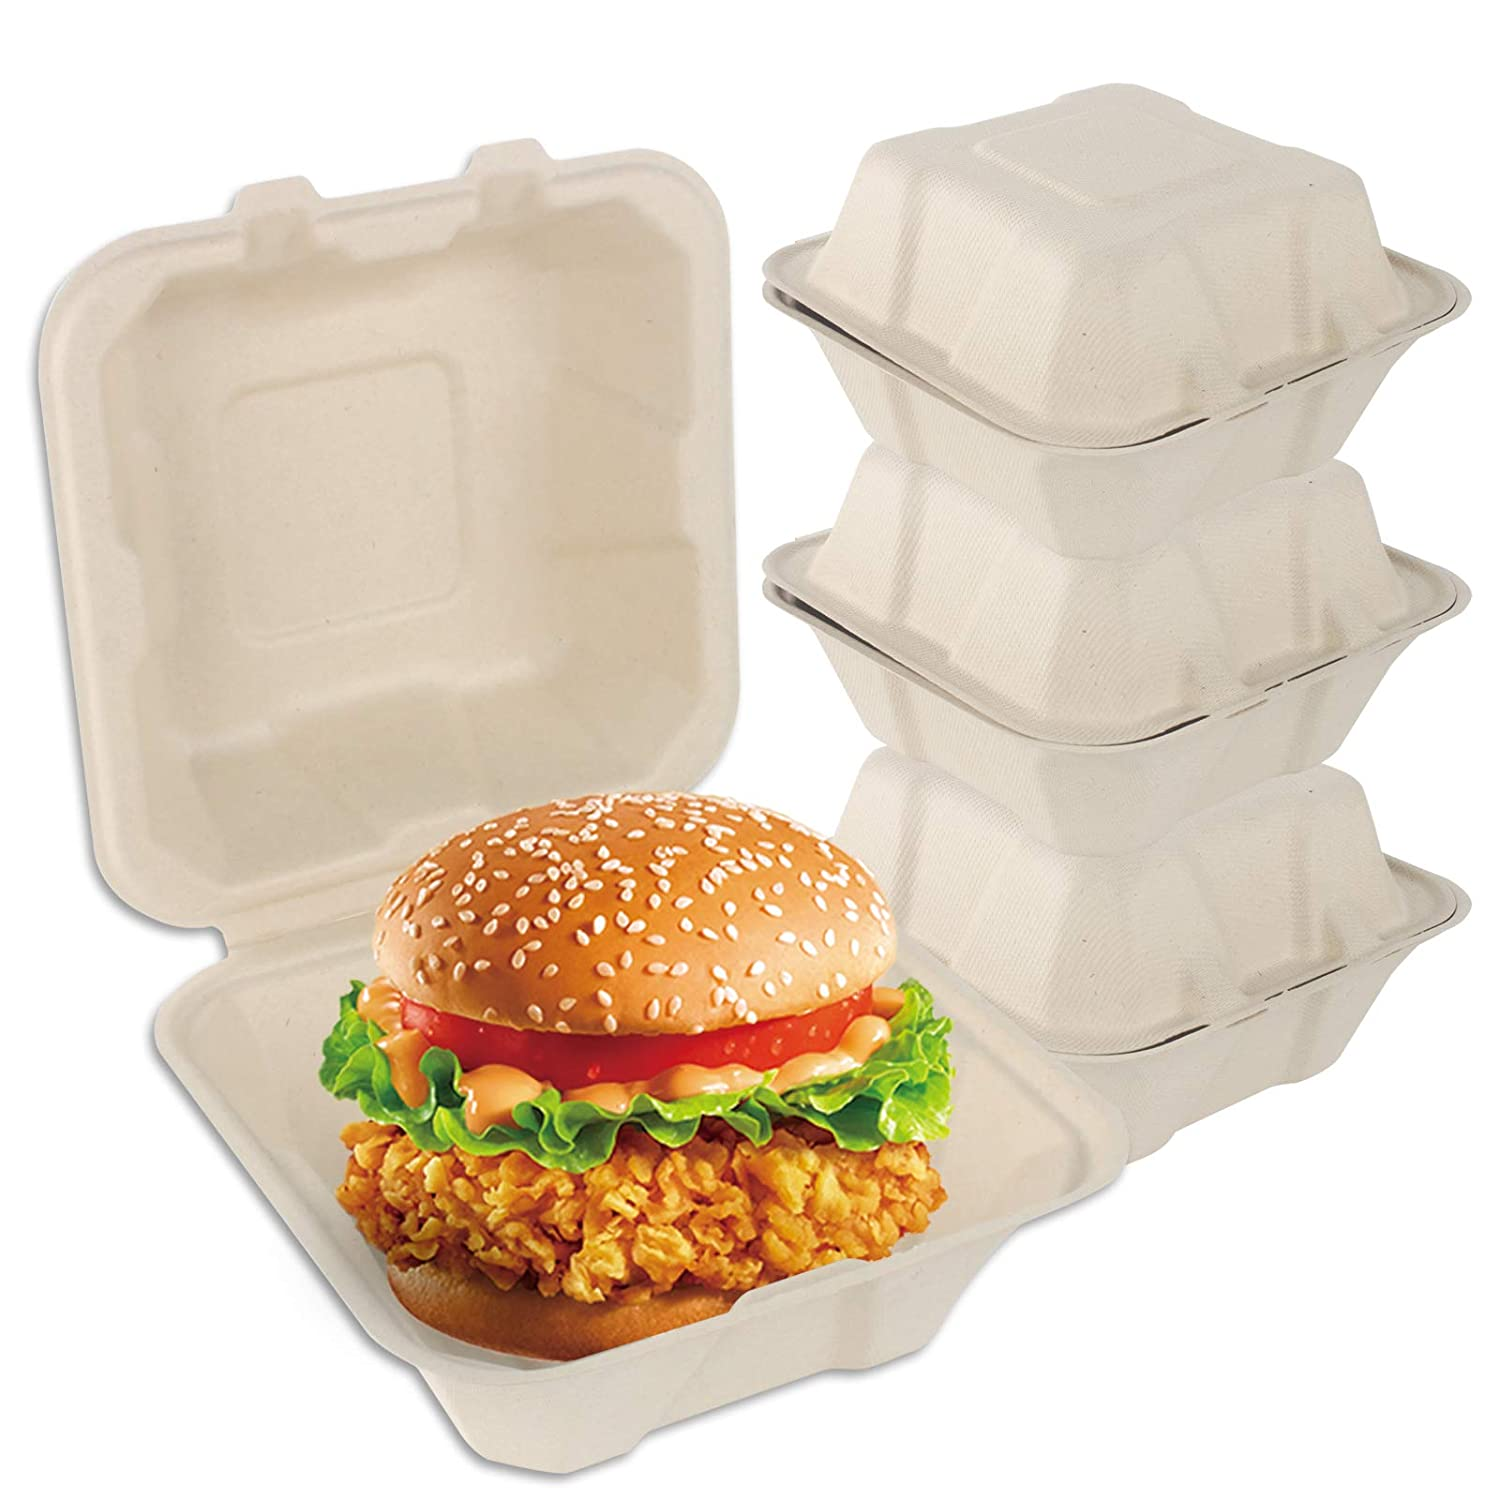 """30 6x6x3"""" Clamshell Food Containers-Compostable Takeaway Boxes, Made of 100% Biodegradable Unbleached Sugarcane Fiber, Alternative to Polystyrene Foam and Plastic, Microwaveable"""